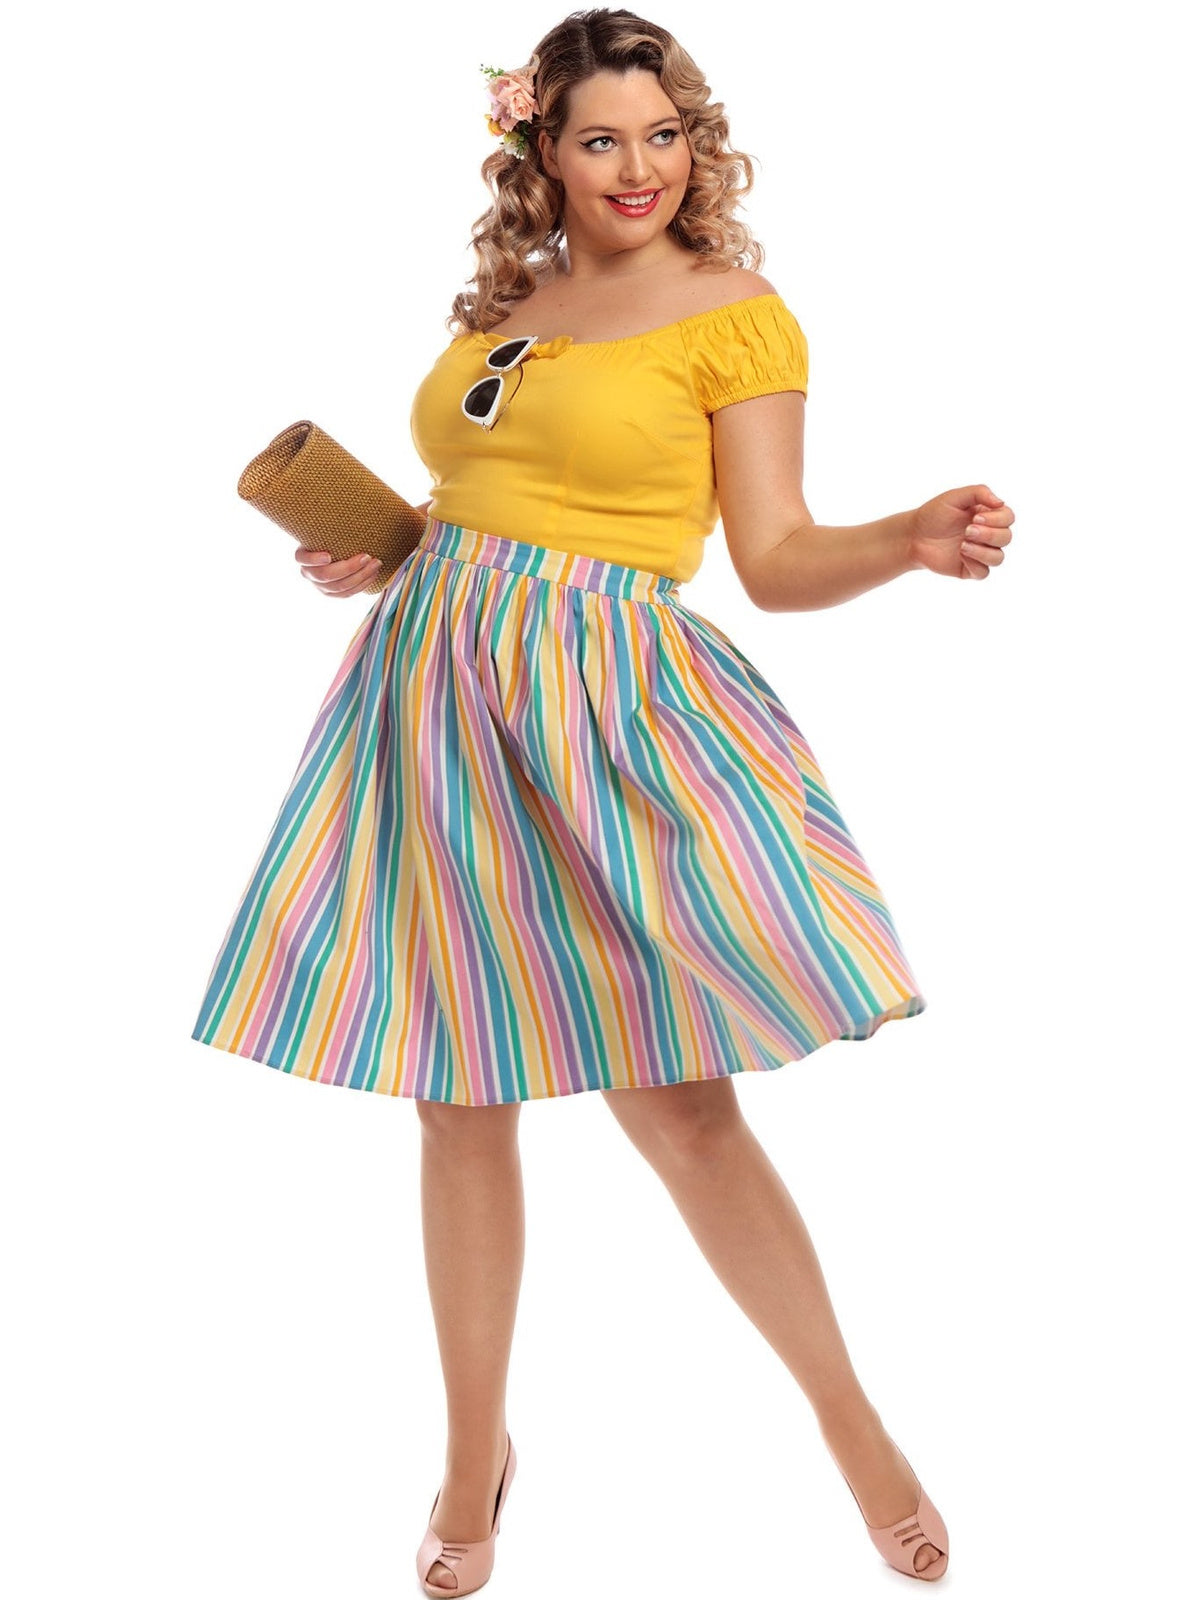 Jasmine Swing Skirt - Rainbow Stripe